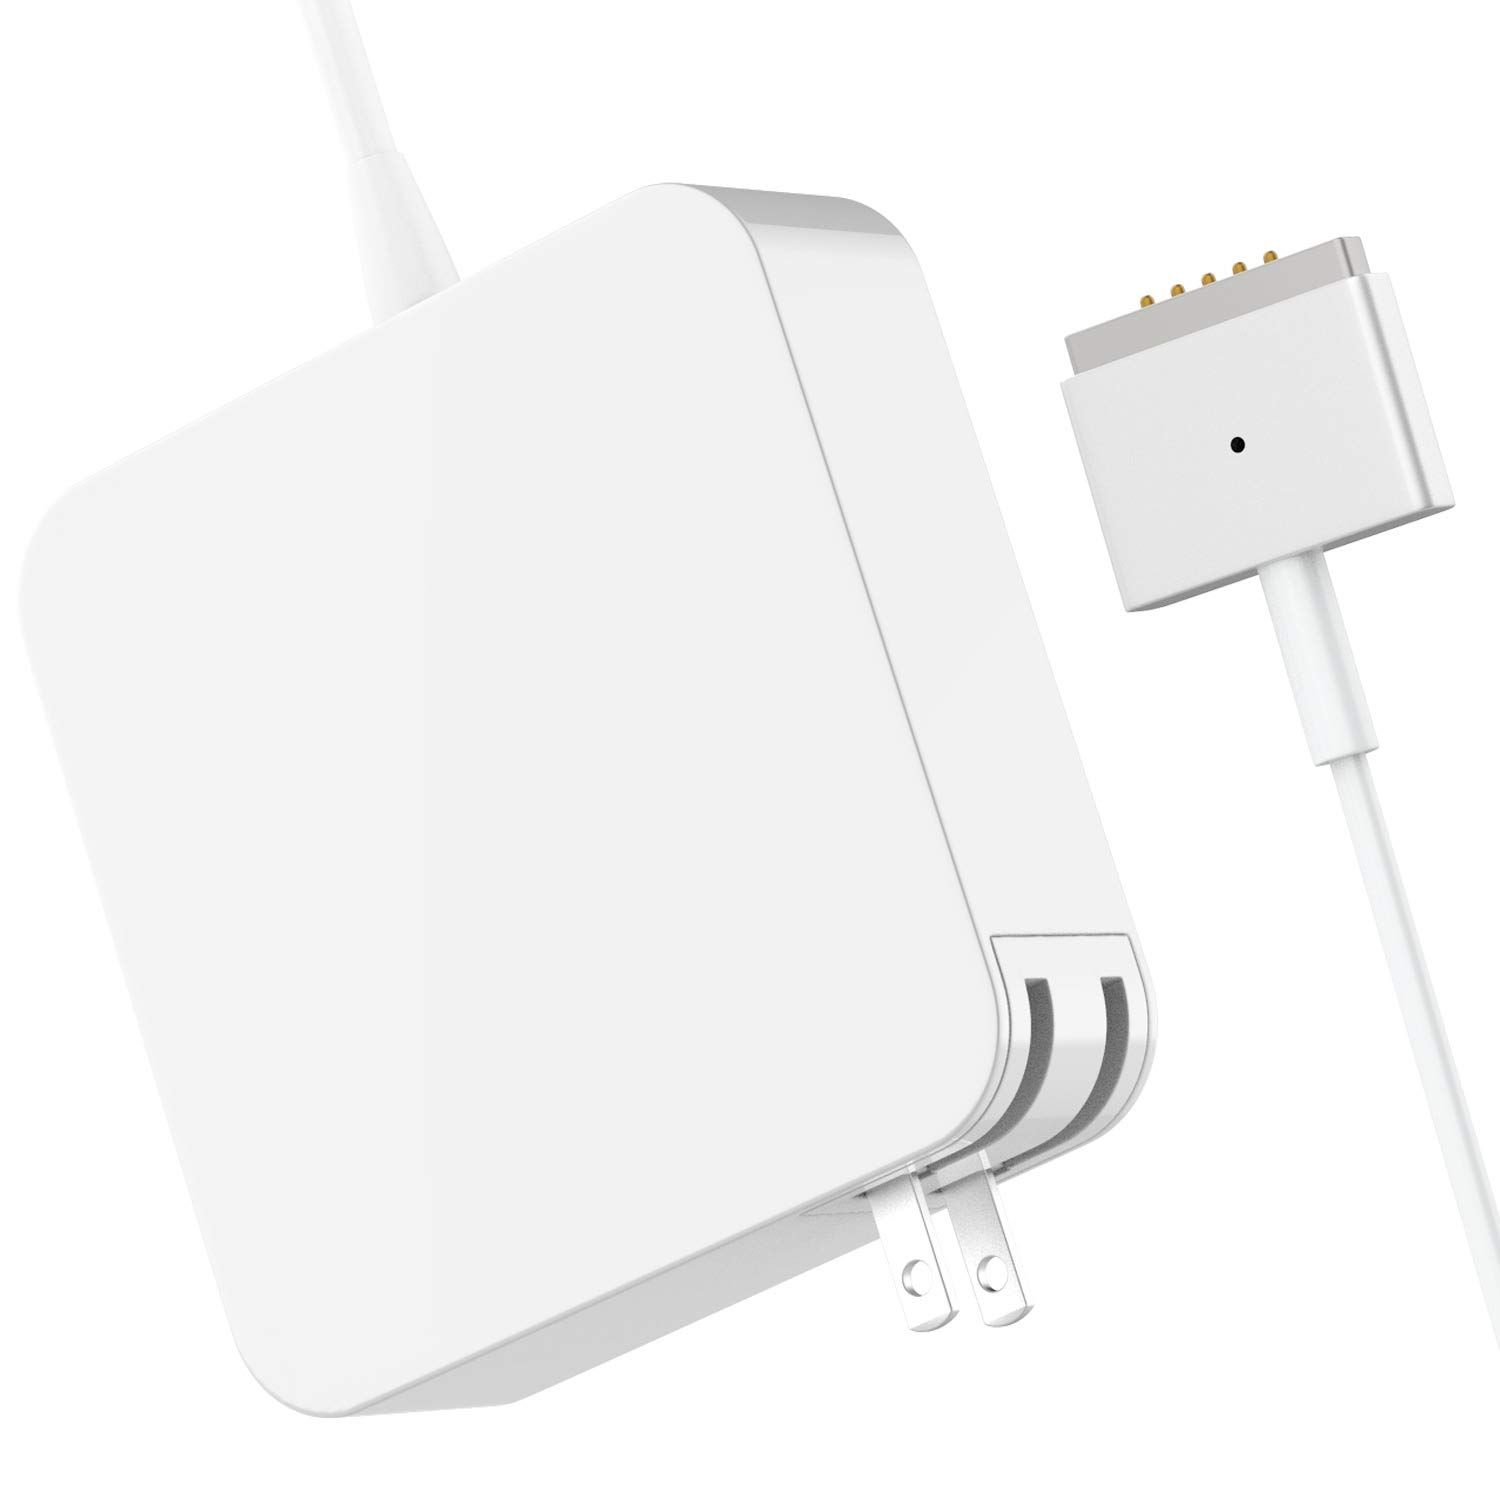 Mac Book Air Charger 45w Magsafe 2 T Tip Charger Adapter Replacement Power Adapter Magsafe Power Adapter Macbook Air 11 Inch